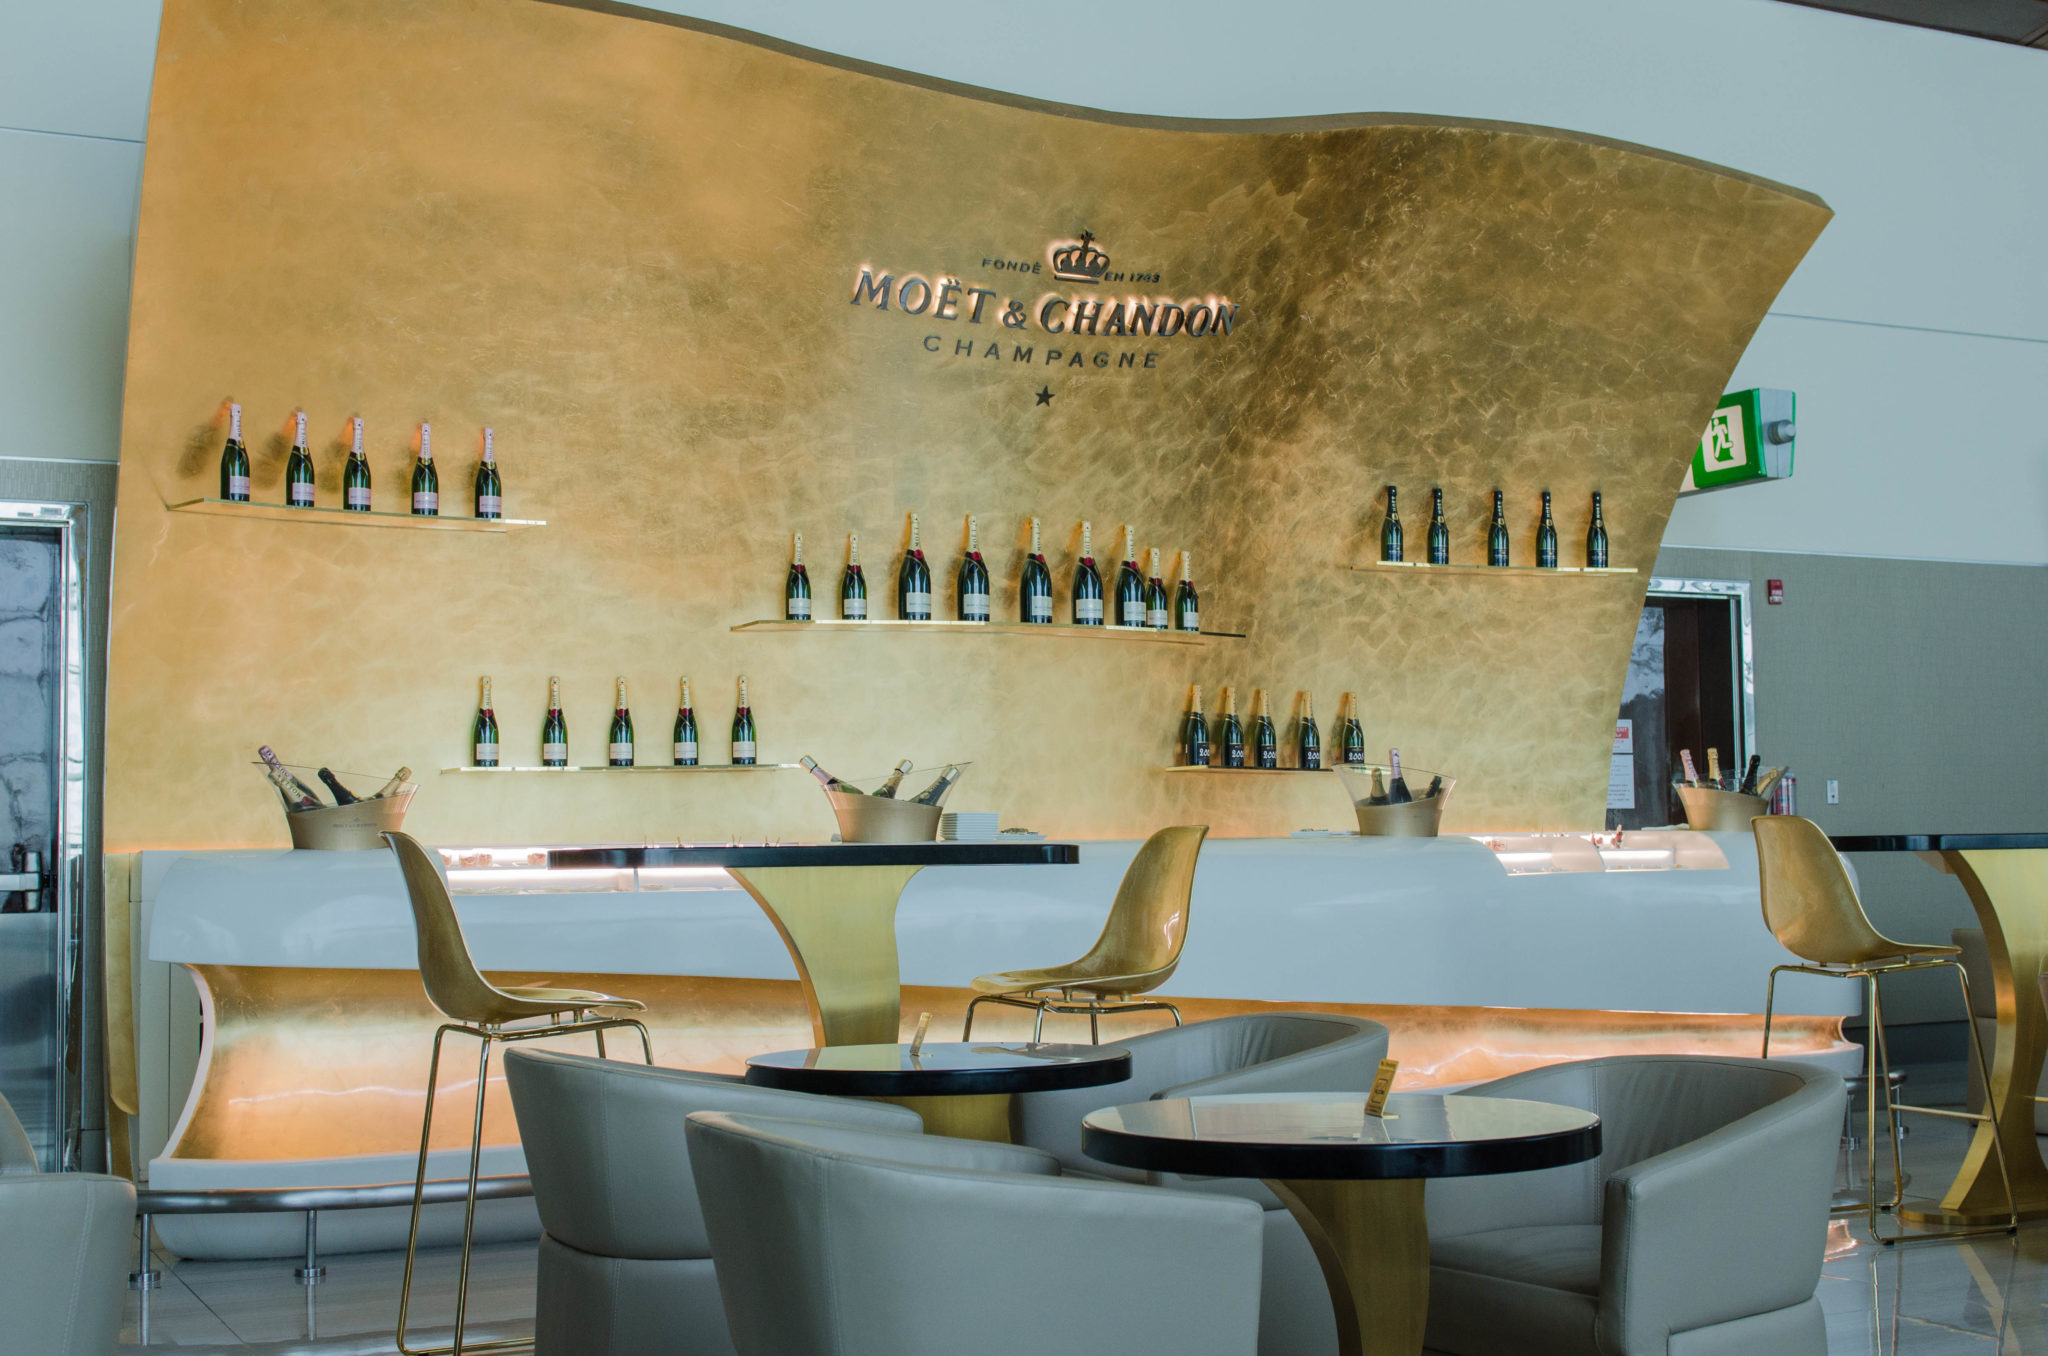 Die Moët & Chandon Bar in der Emirates Lounge Dubai für Emirates Business Class Passagiere